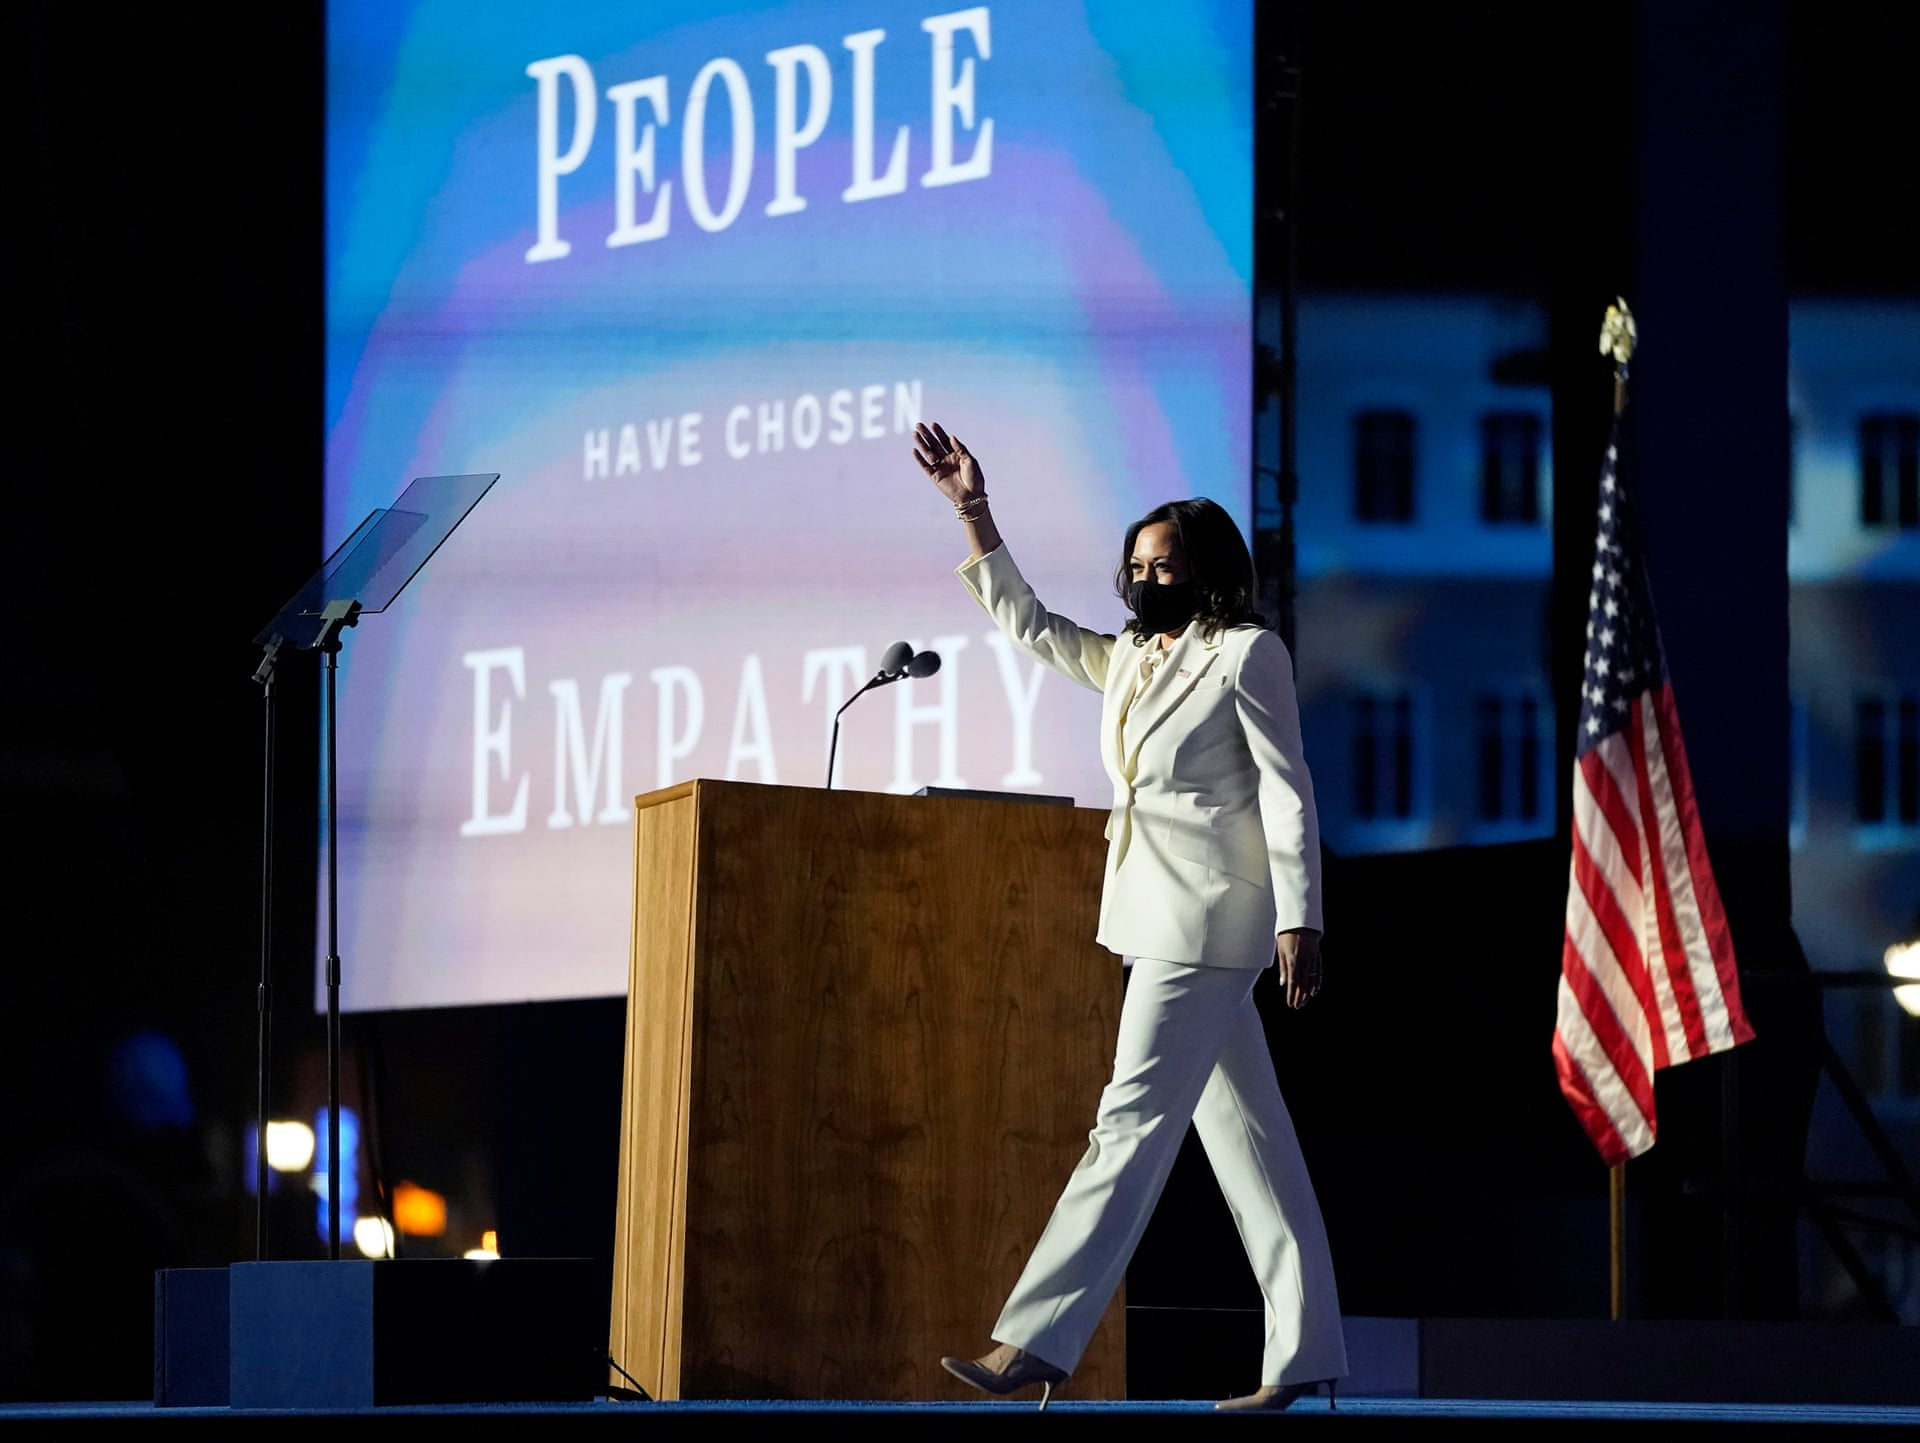 Kamala HARRIS_People have chosen Empathy